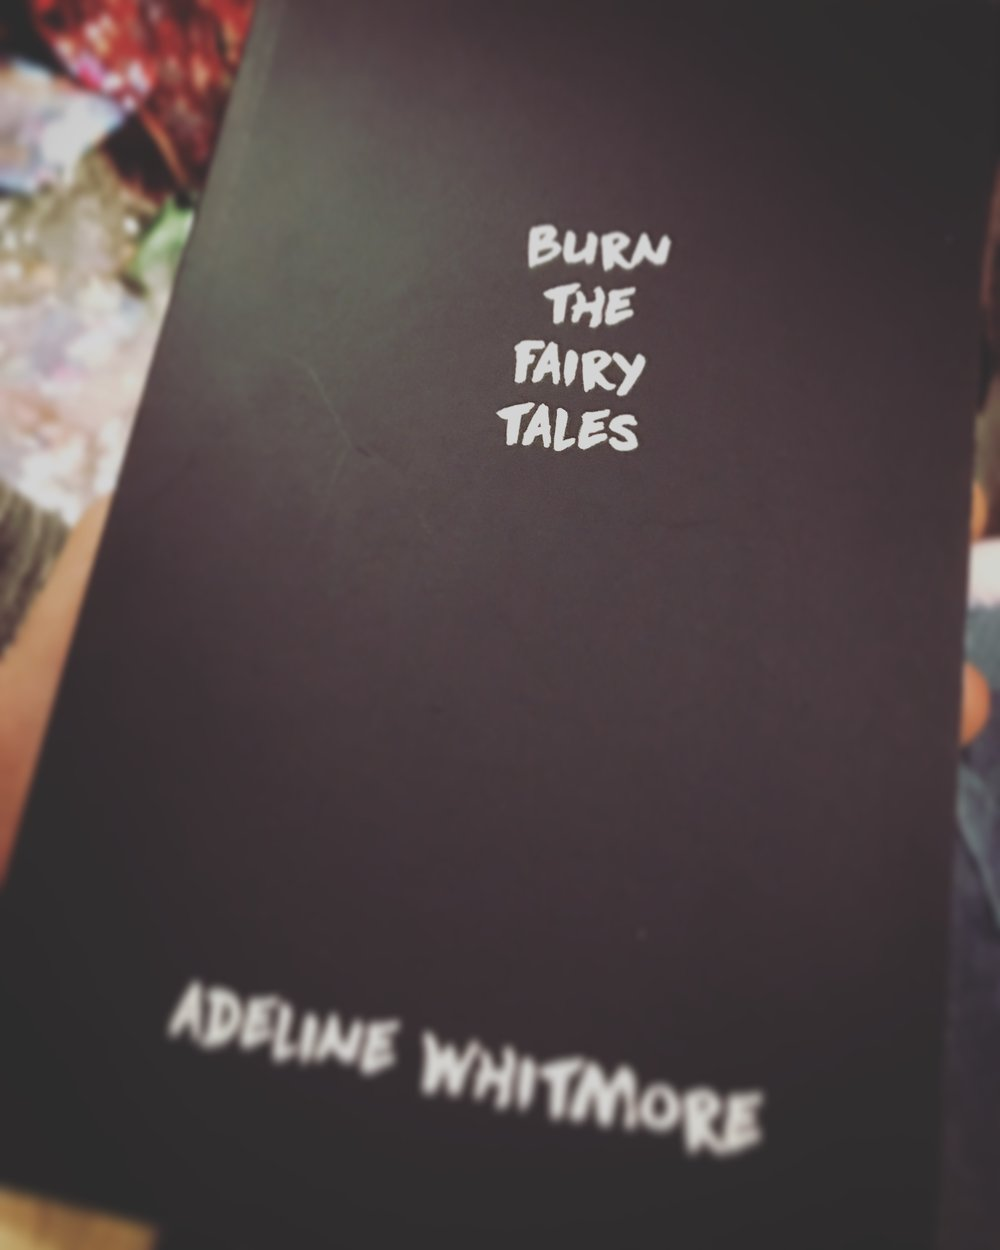 BURN THE FAIRY TALES: ADELINE WHITMORE